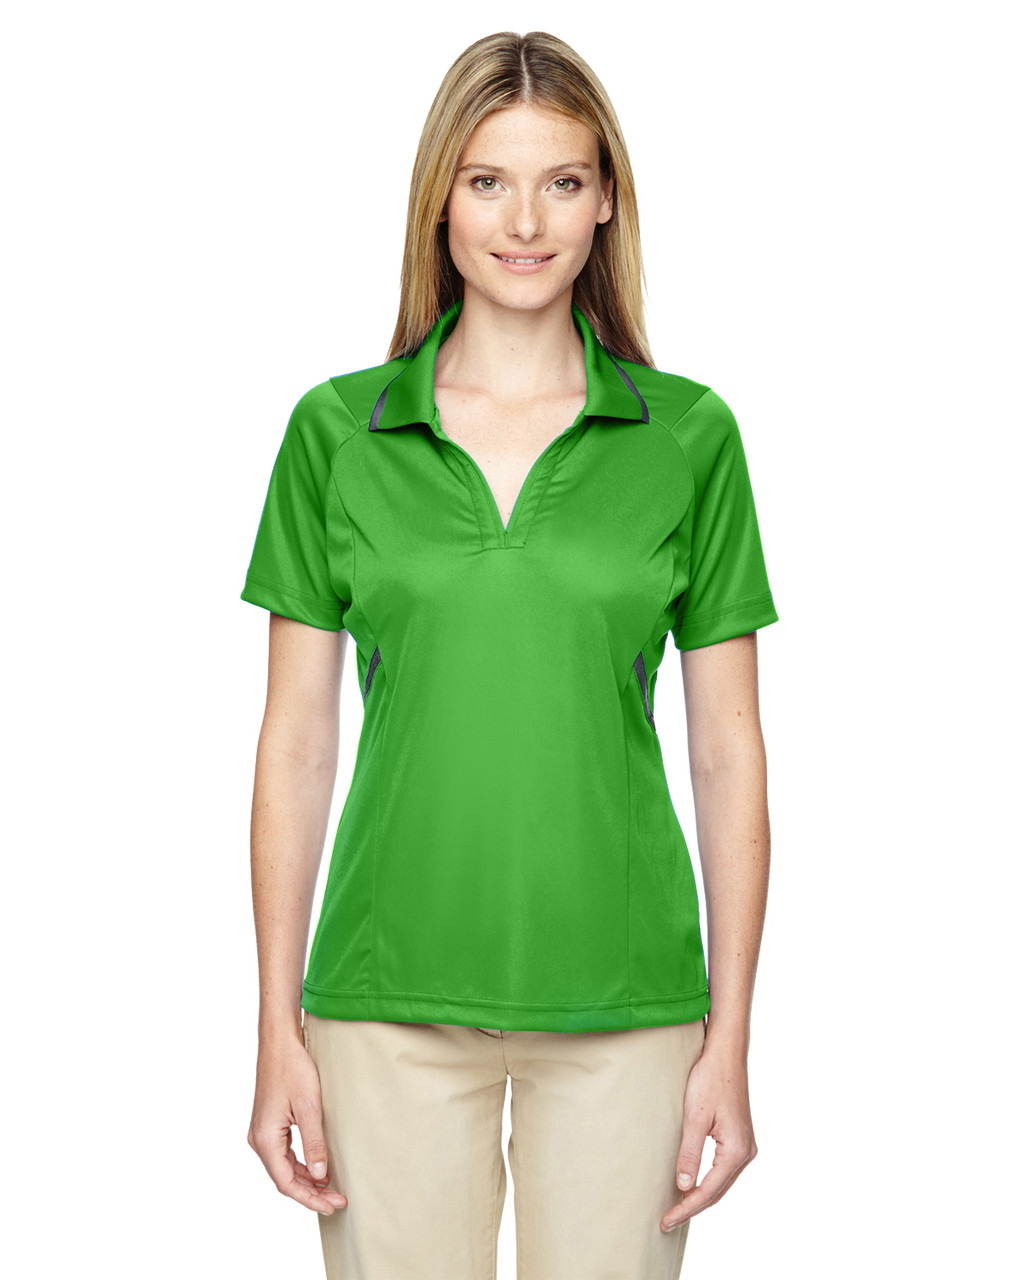 Valley Green - 75118 Ash City - Extreme Eperformance Propel Interlock Polo Shirt with Contrast Tape